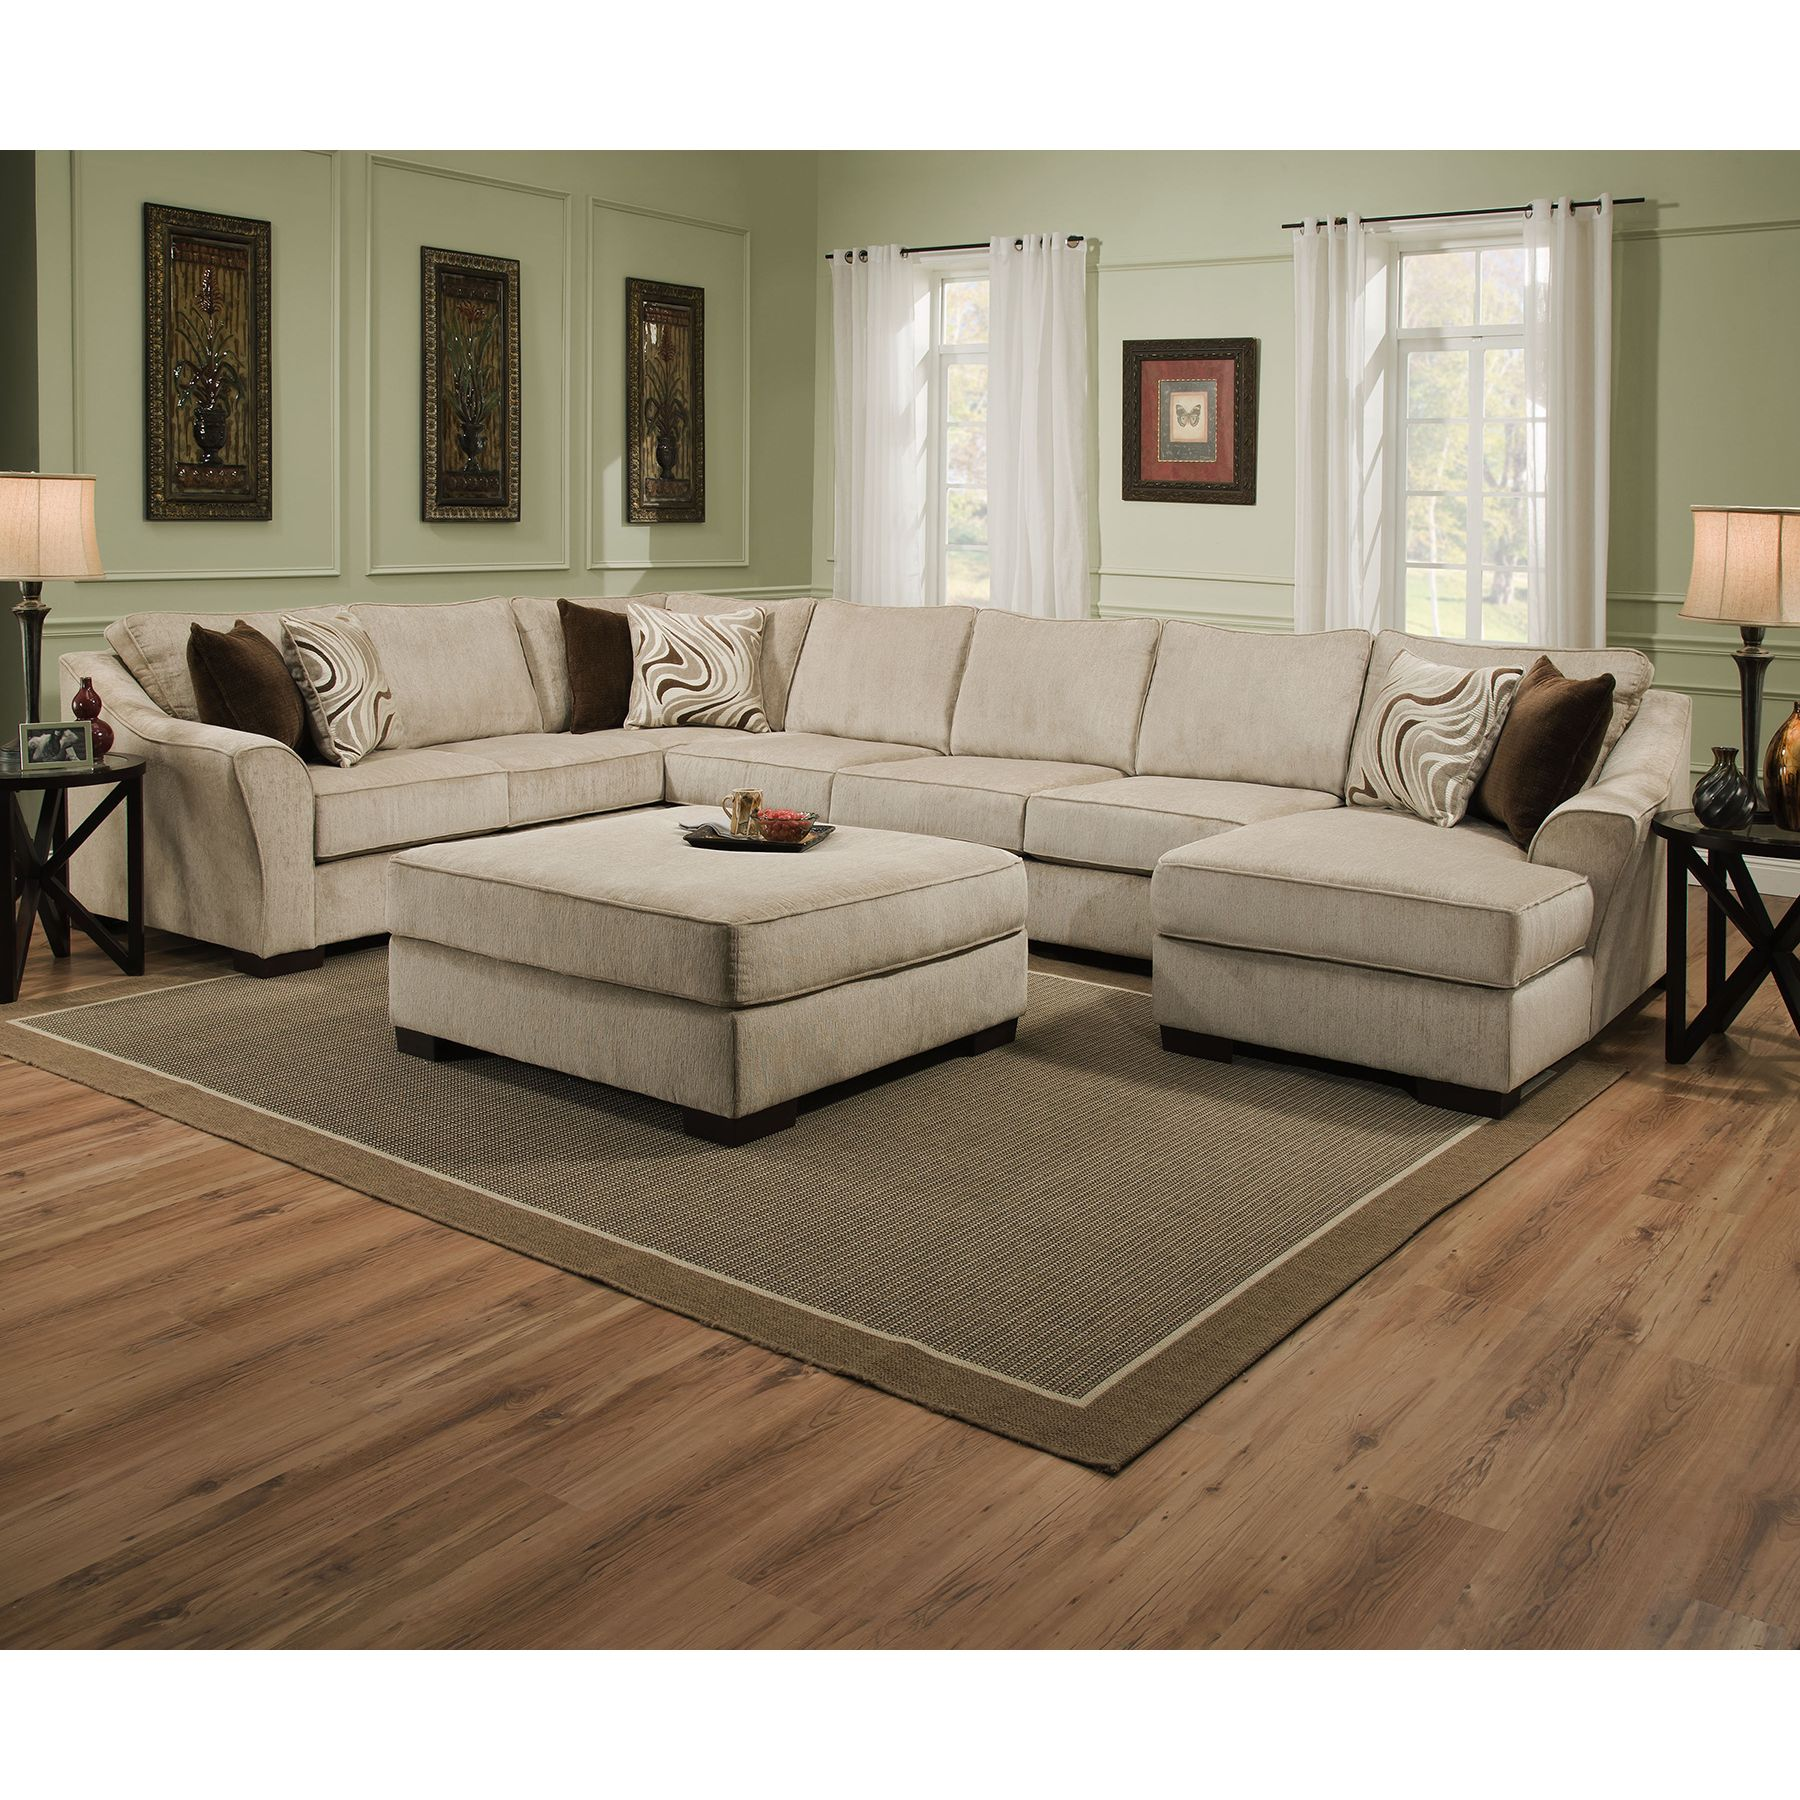 Simmons Upholstery Kingsley Beige Sectional and Ottoman by